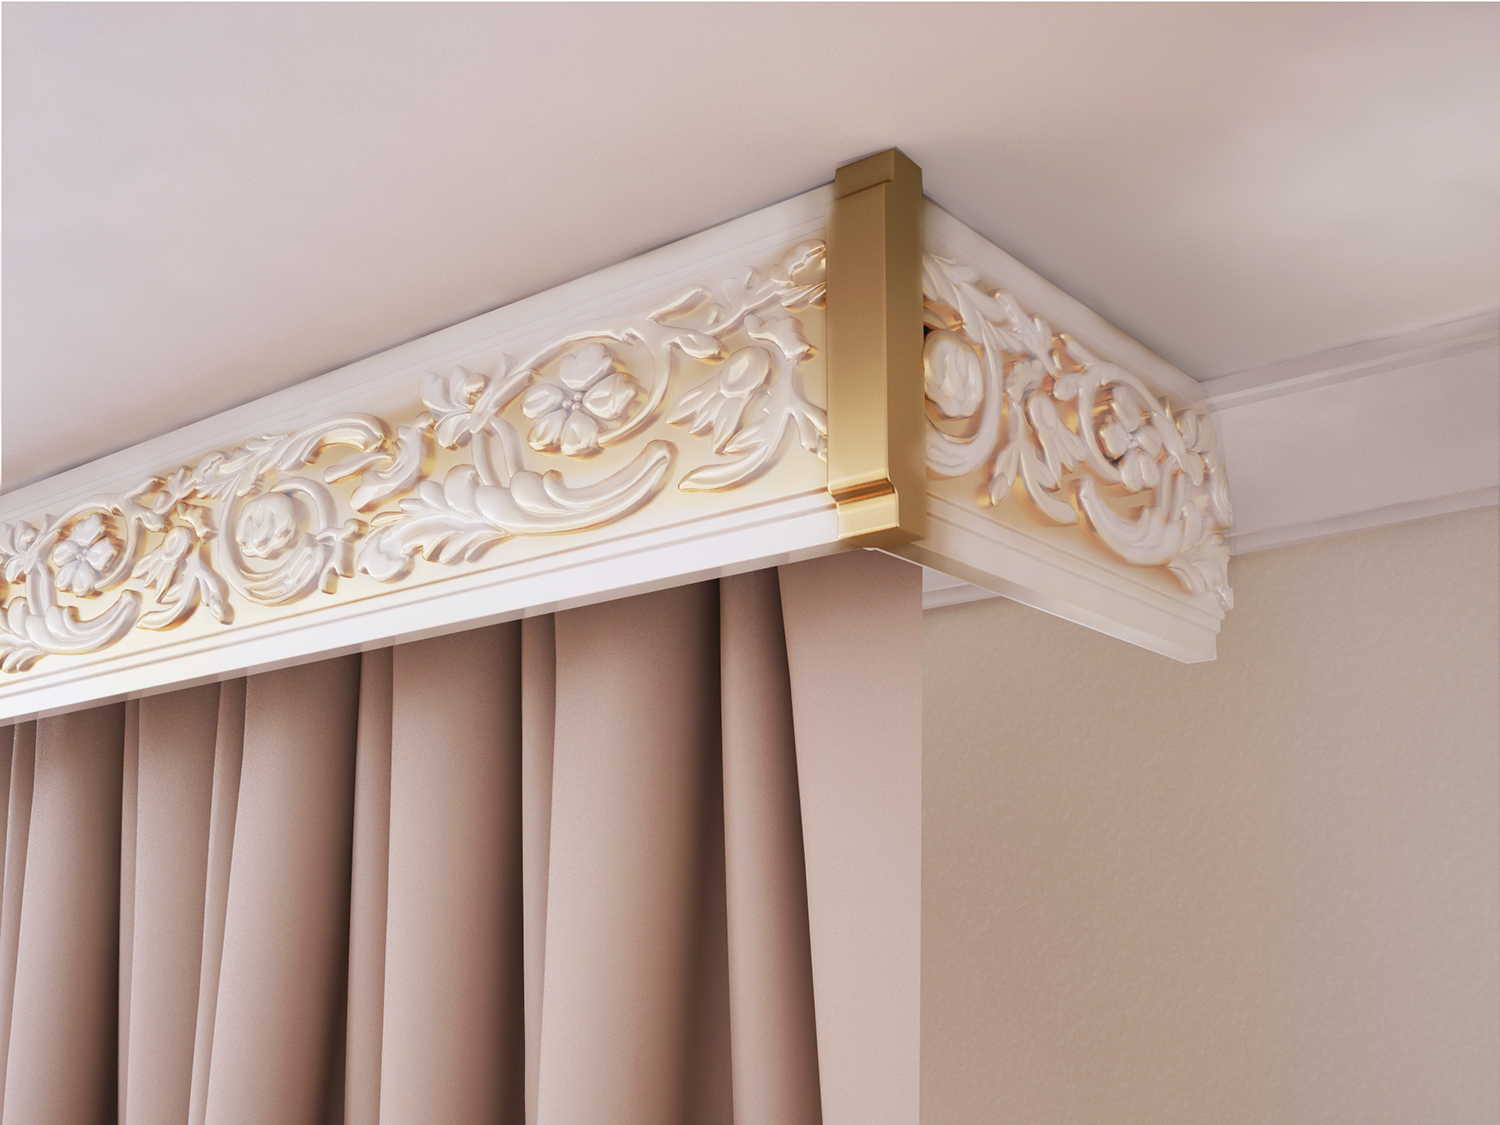 Wooden Curtain Rods For Curtains 39 Photos Ceiling Double Row And Single Row Round On Rings And Carved From Wood Accessories